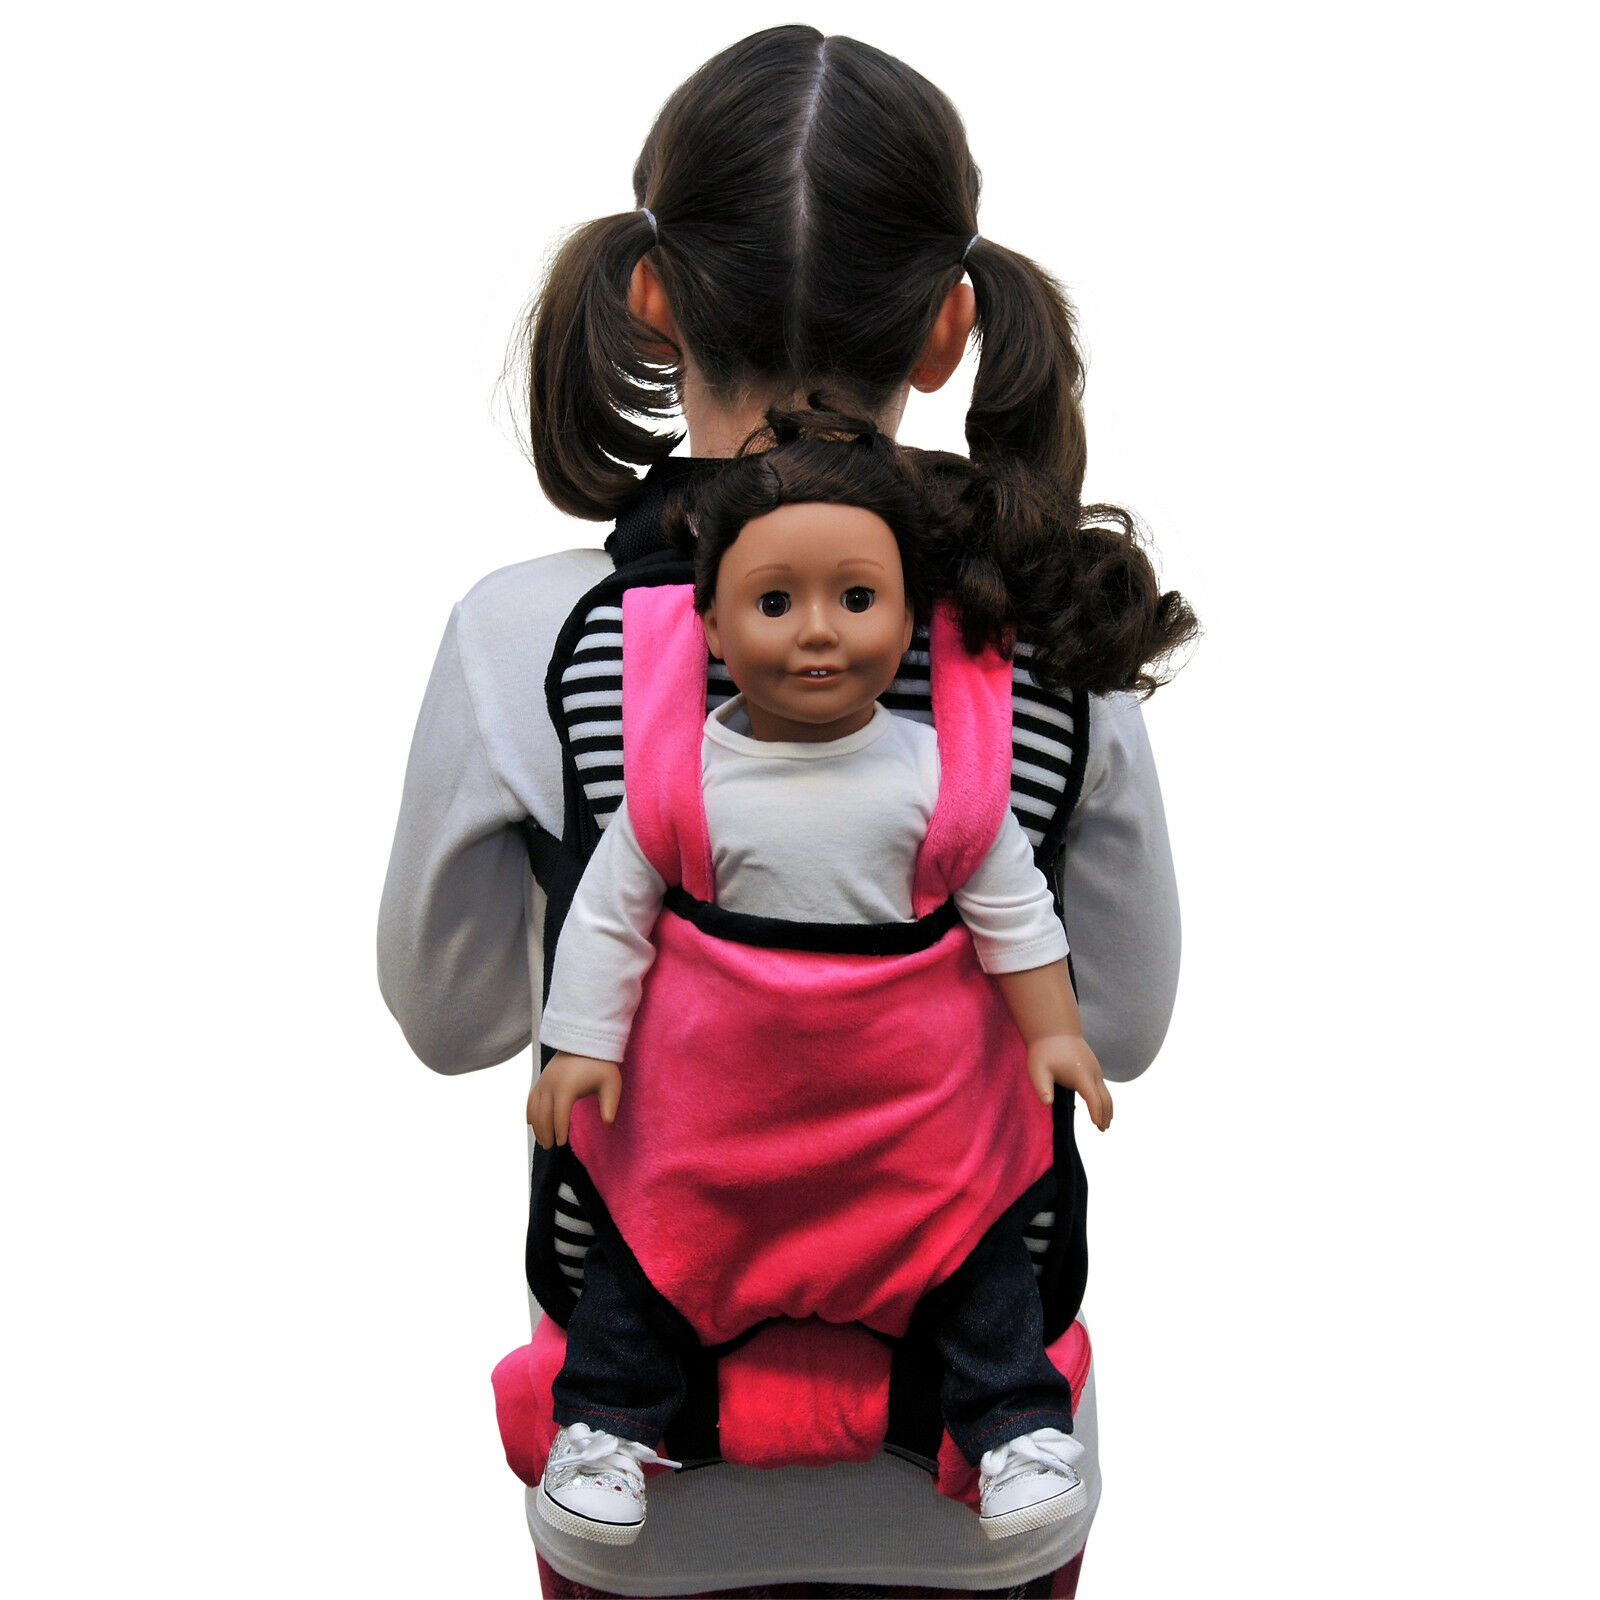 Child's Backpack & Doll Carrier Sleeping Bag For 18In